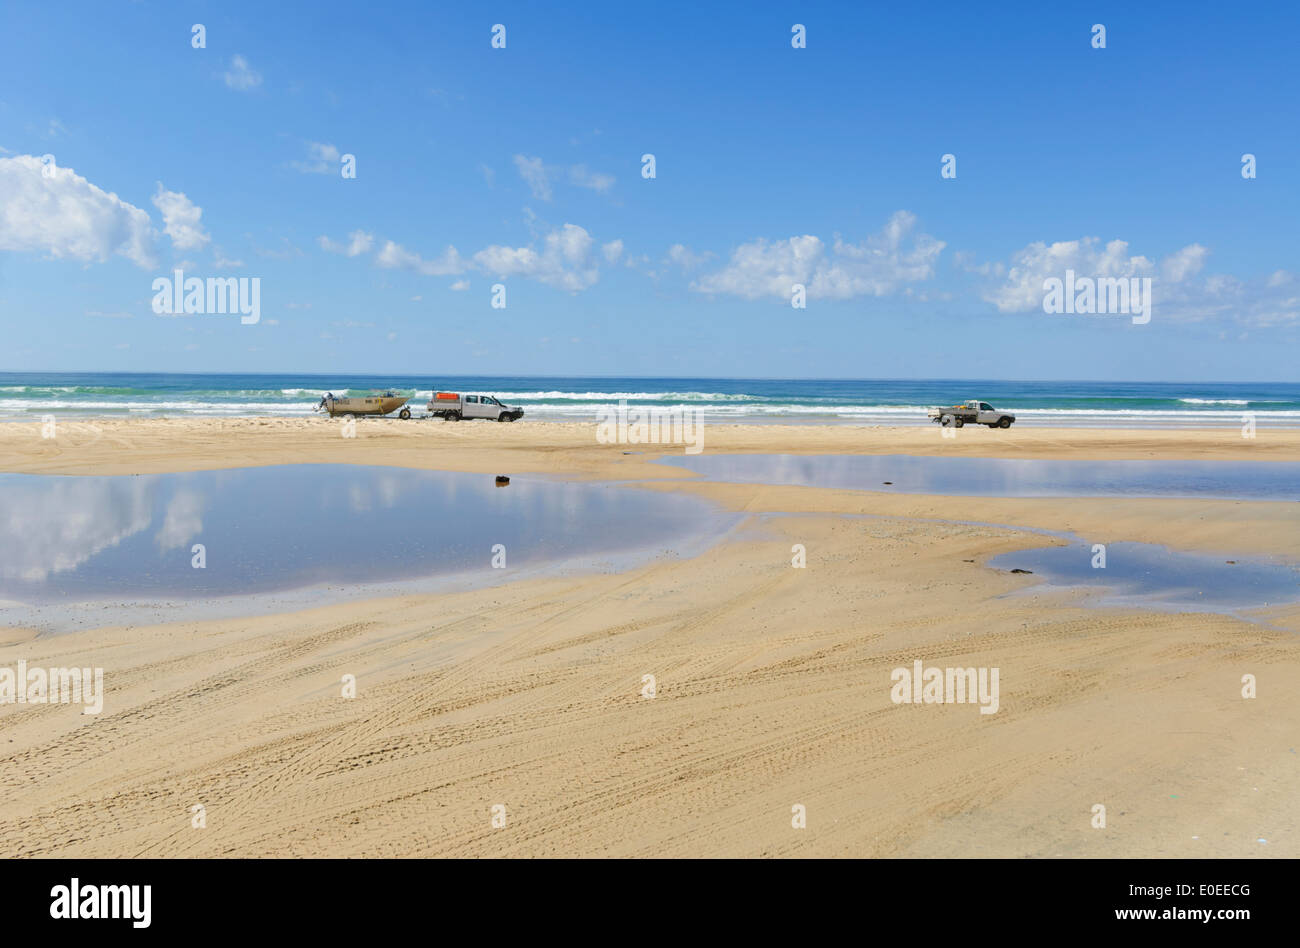 4 Wheel Drive Sand Driving on the Beach, Eurong, Fraser Island, Queensland, QLD,  Australia - Stock Image